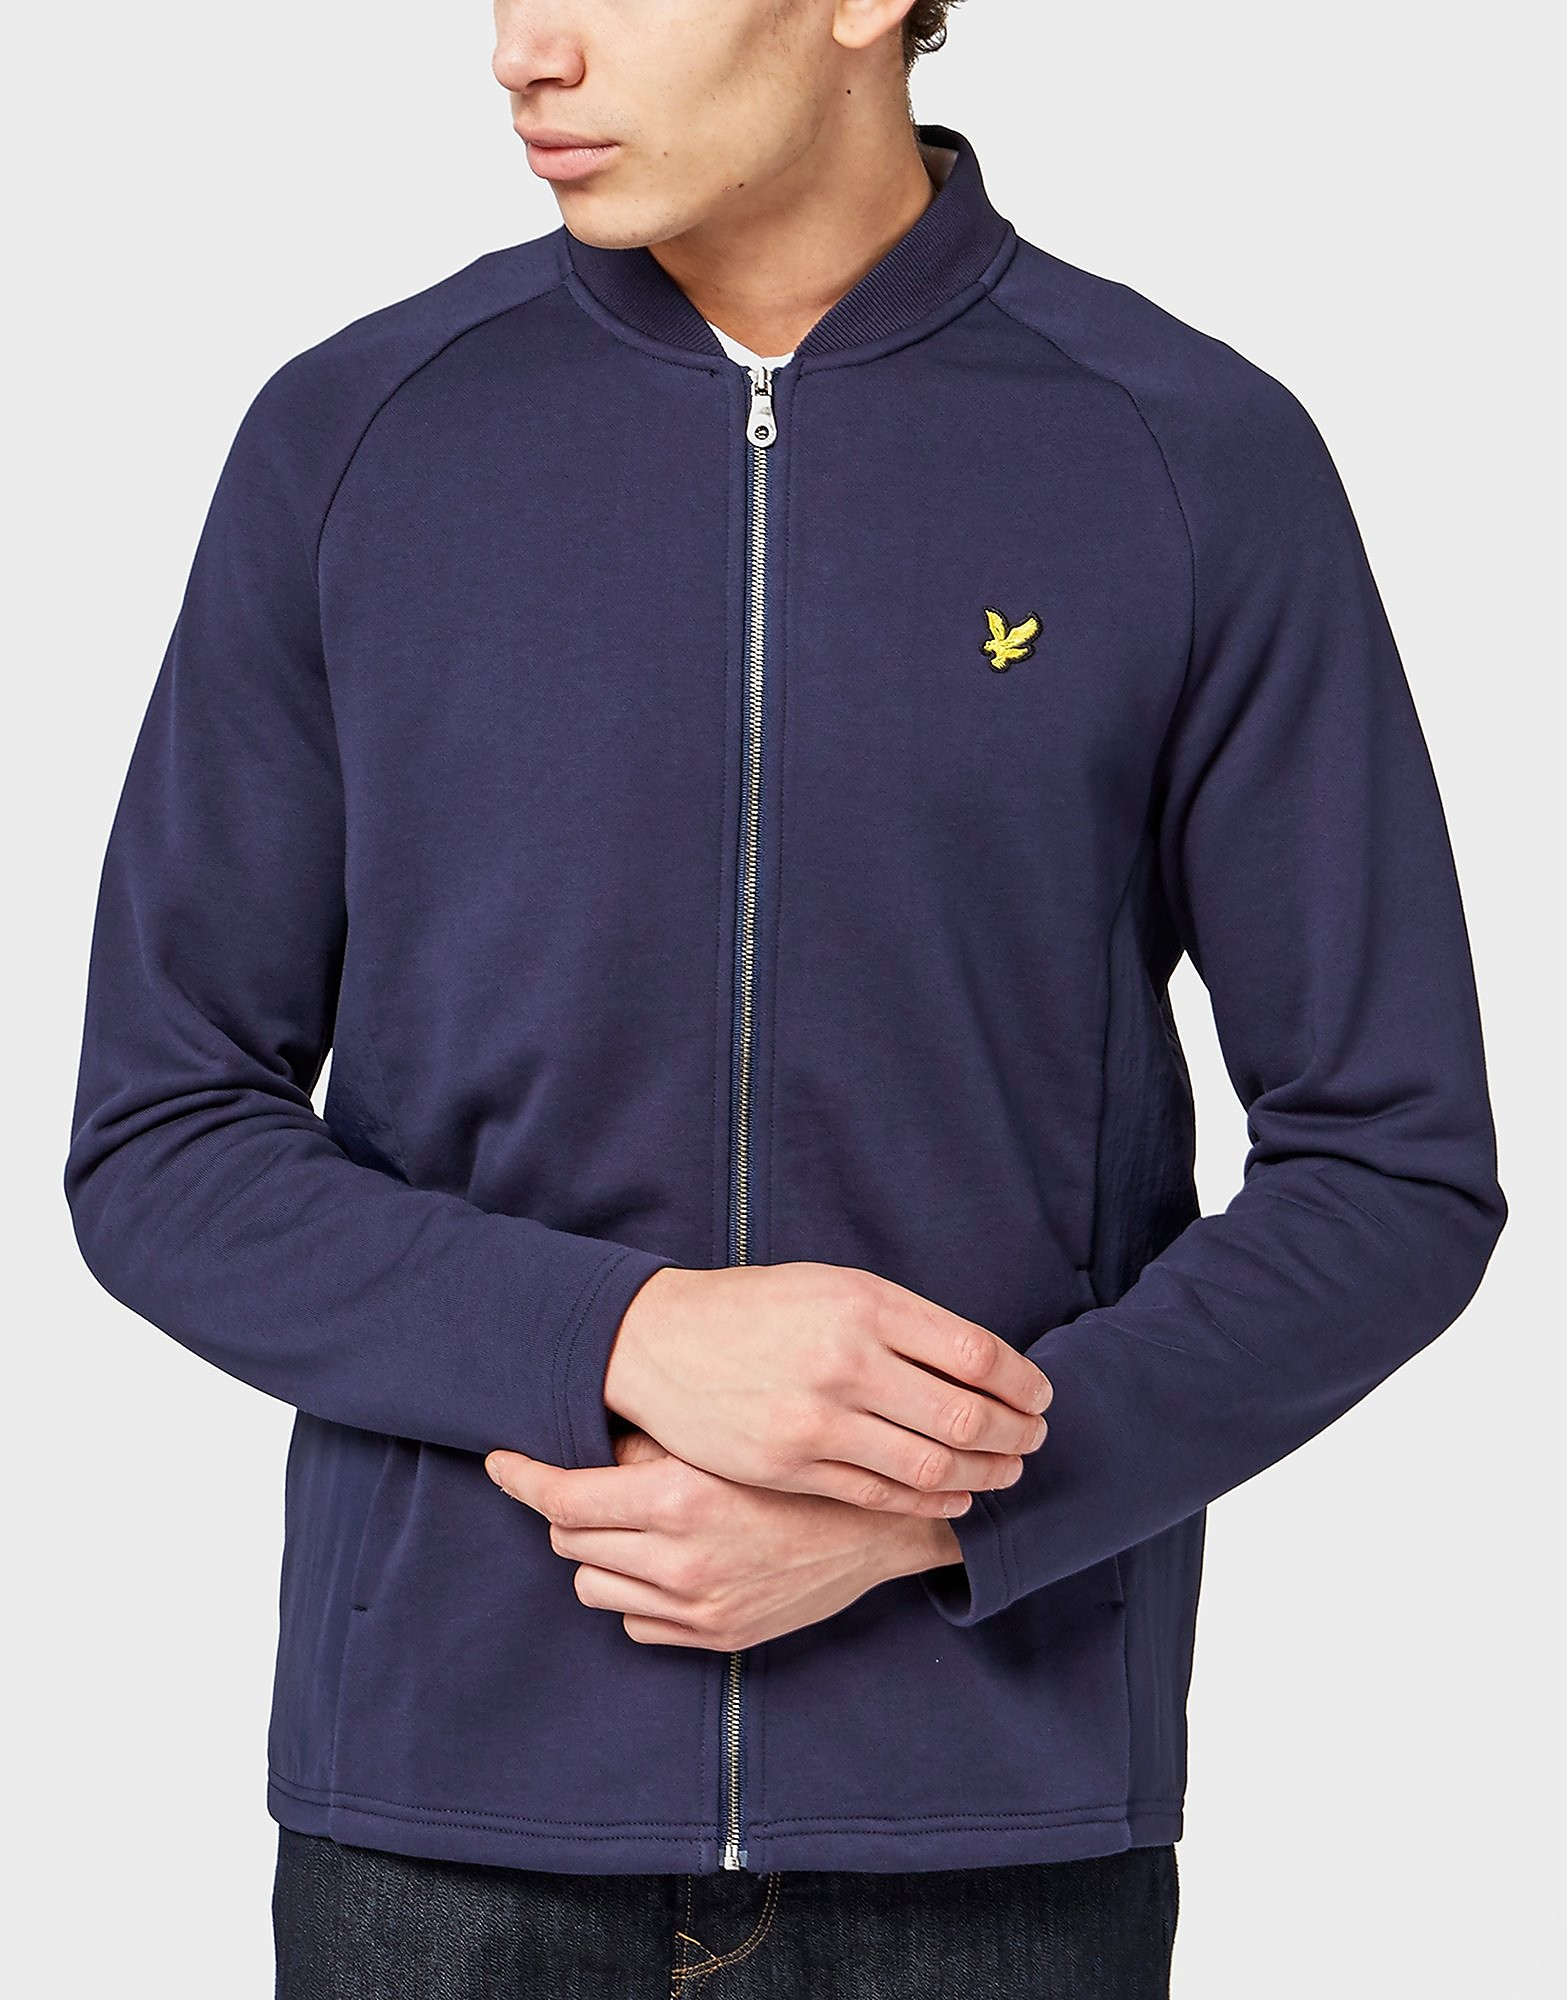 Lyle & Scott Seam Pocket Bomber